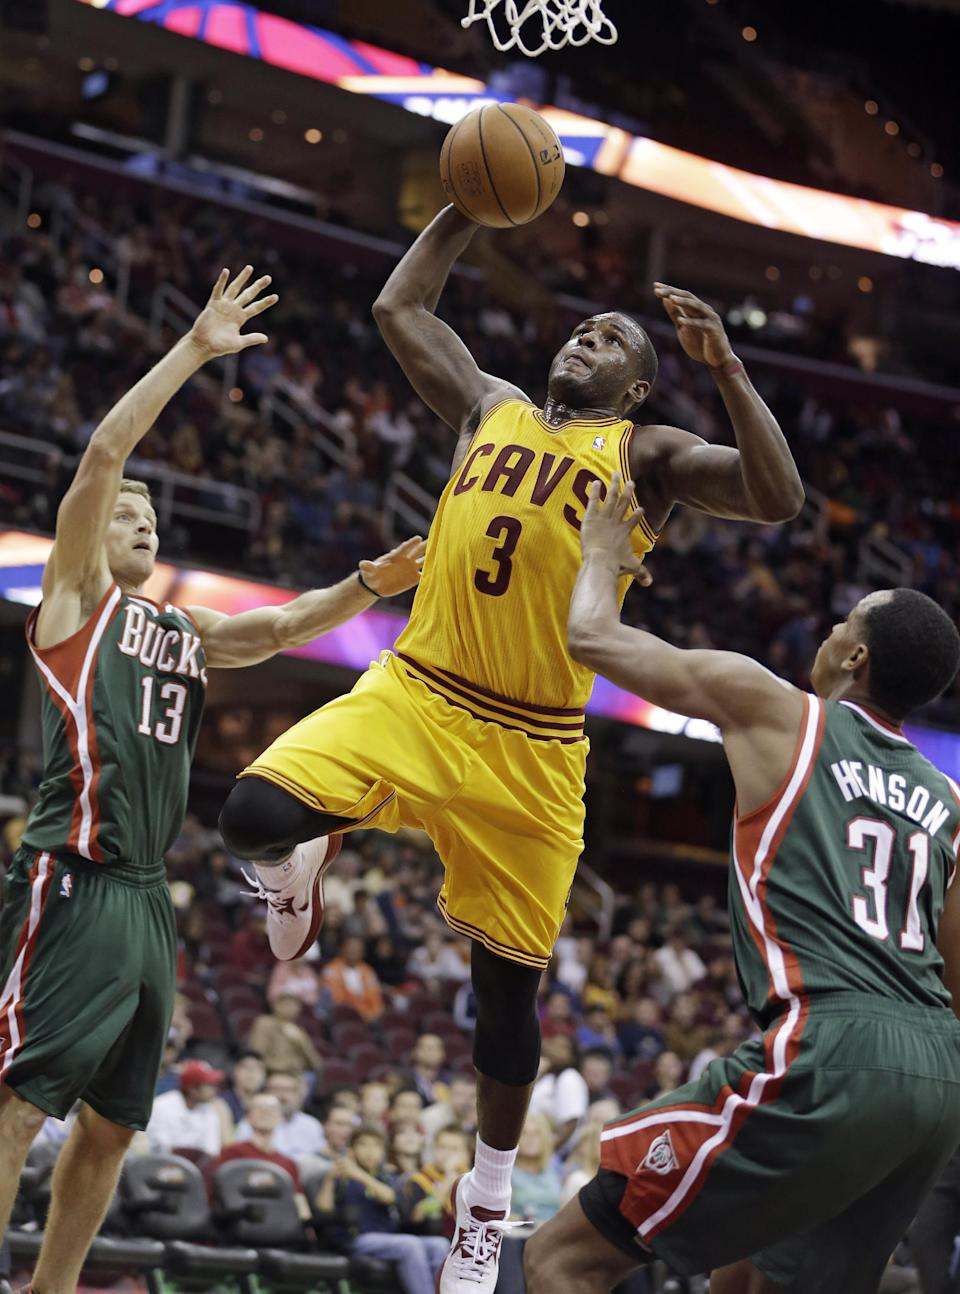 Cavaliers beat Bucks in preseason opener 99-87